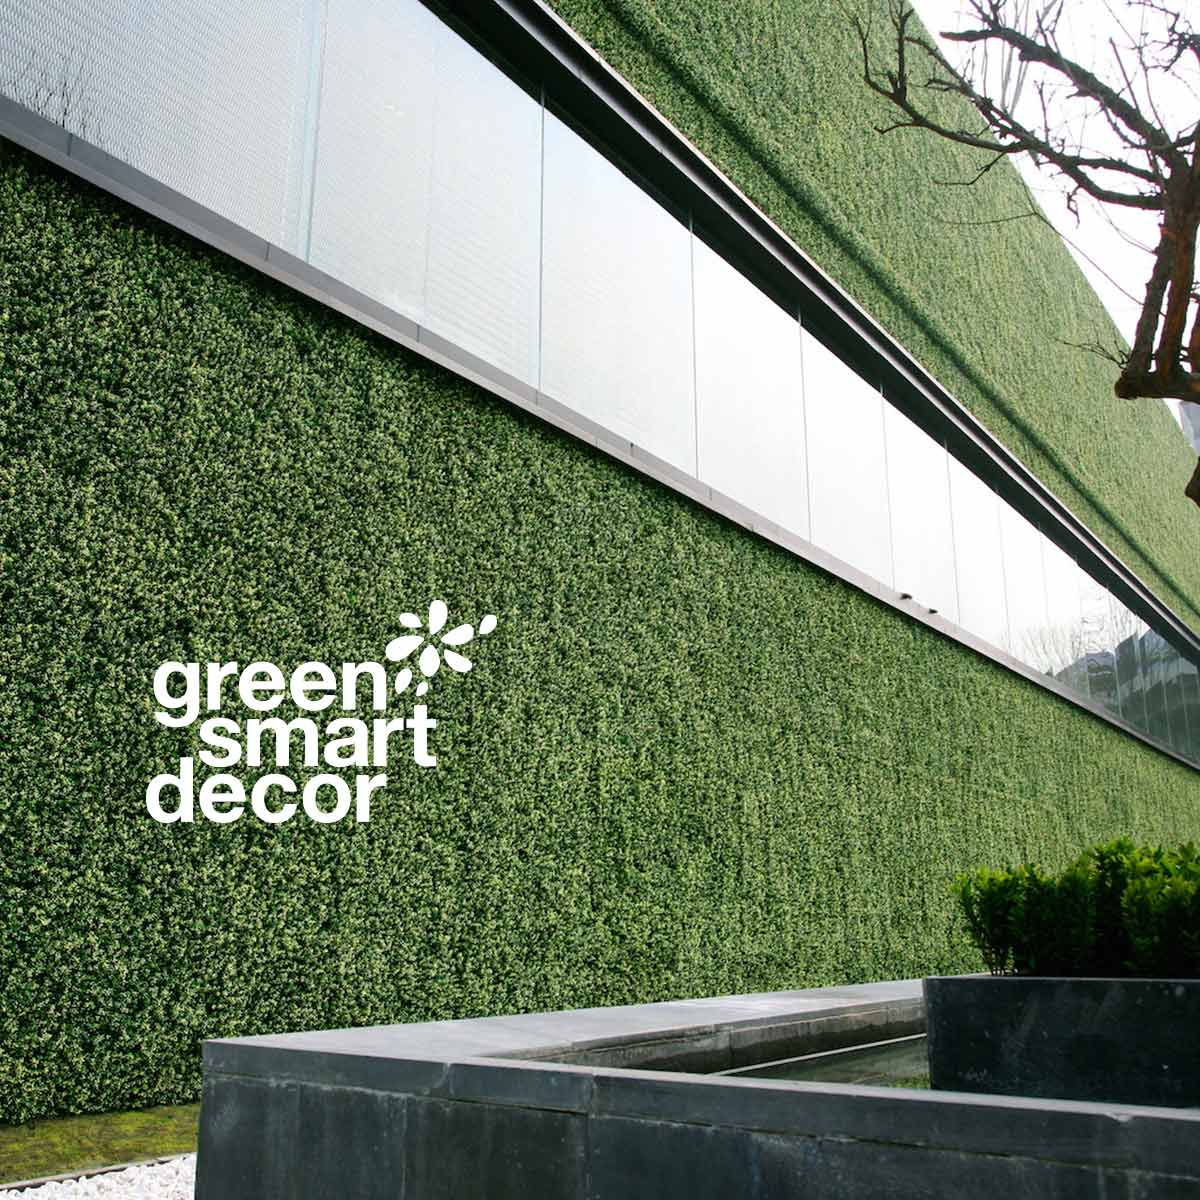 Greensmart Decor signature over green wall